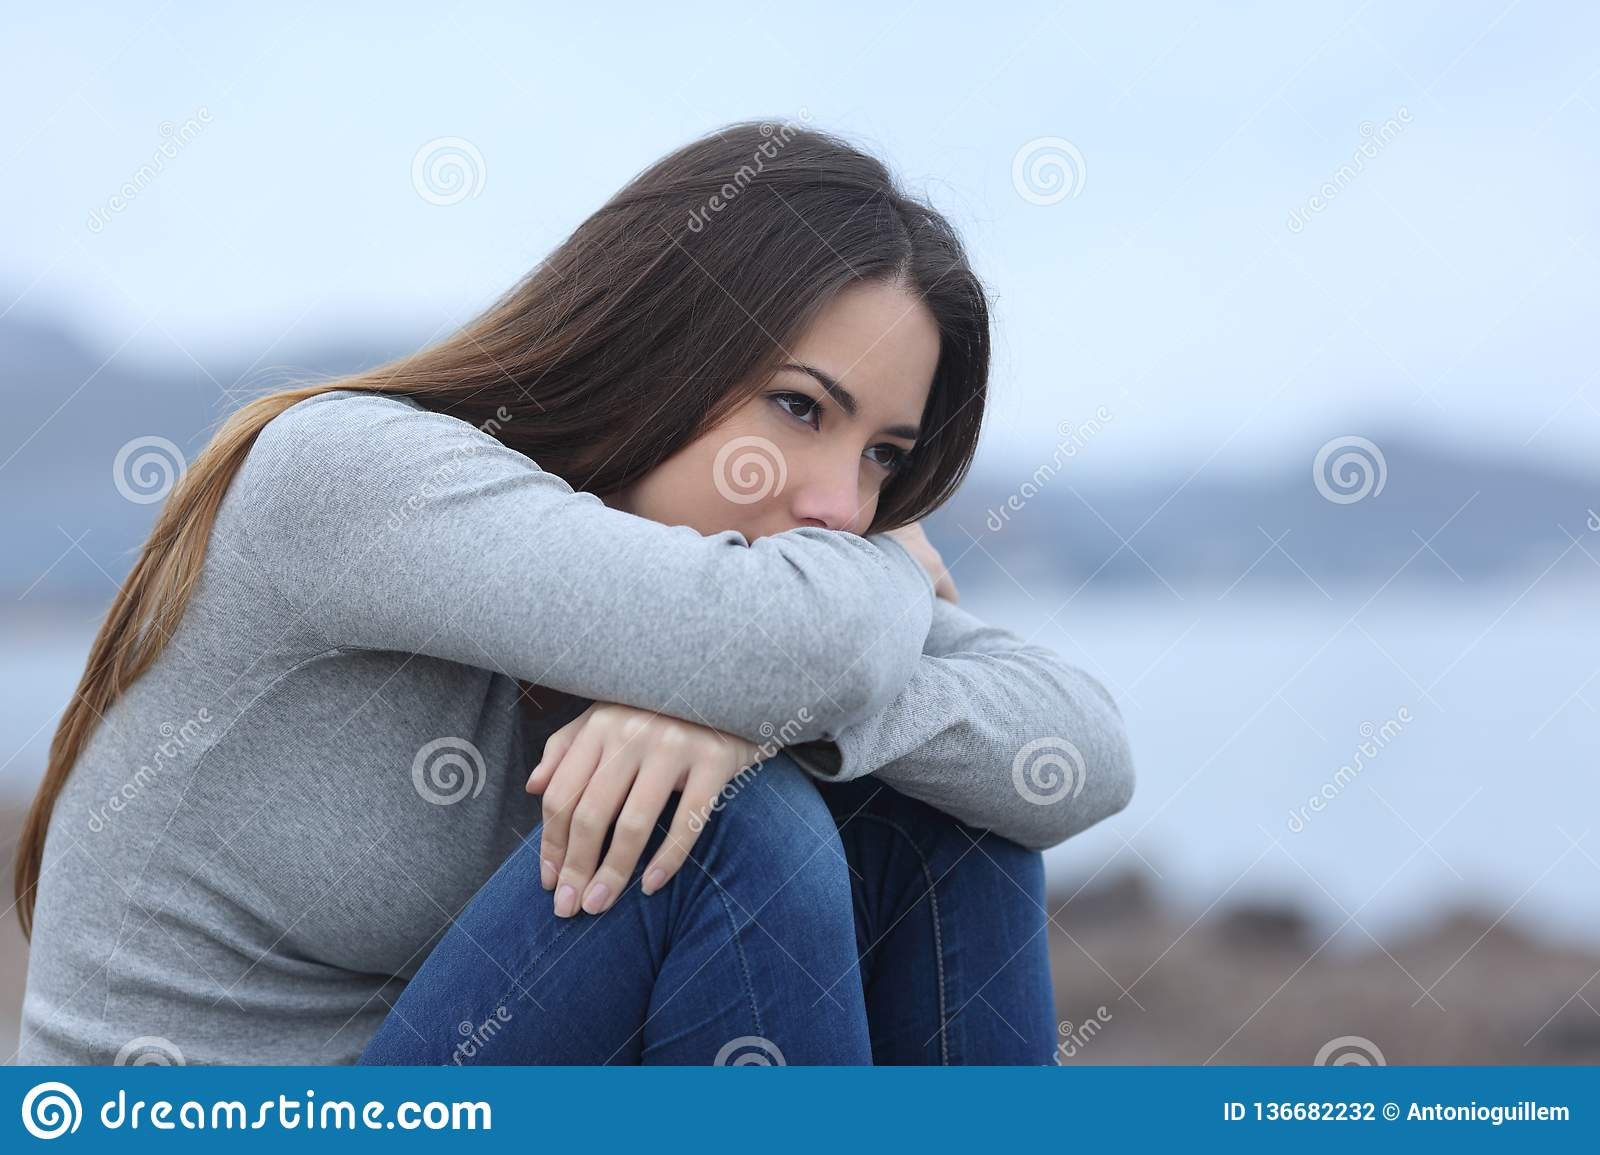 Sad girl looking away alone on the beach